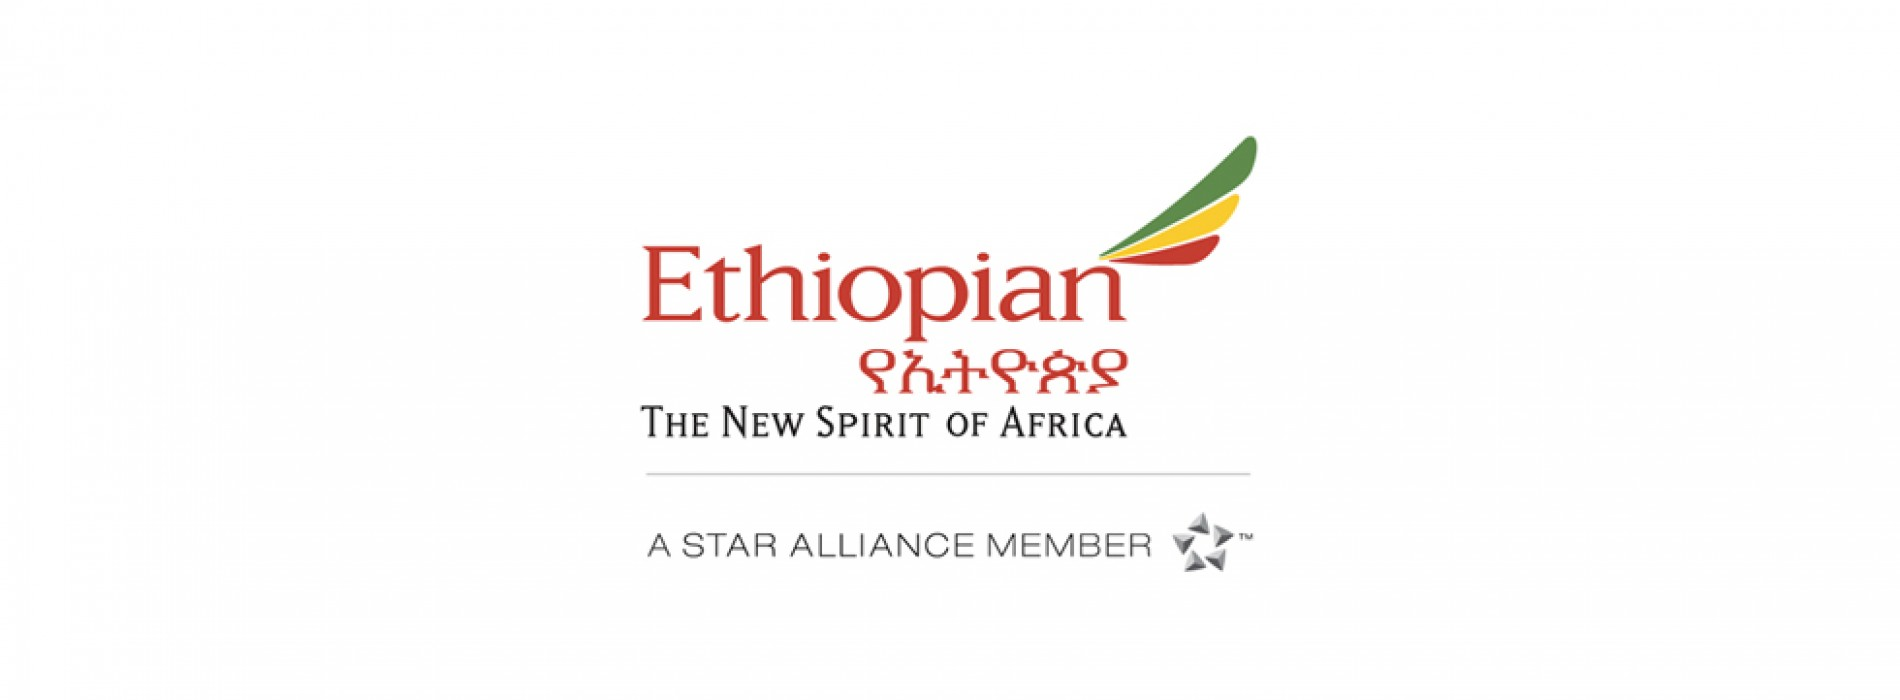 Ethiopian continues its operation in Nigeria